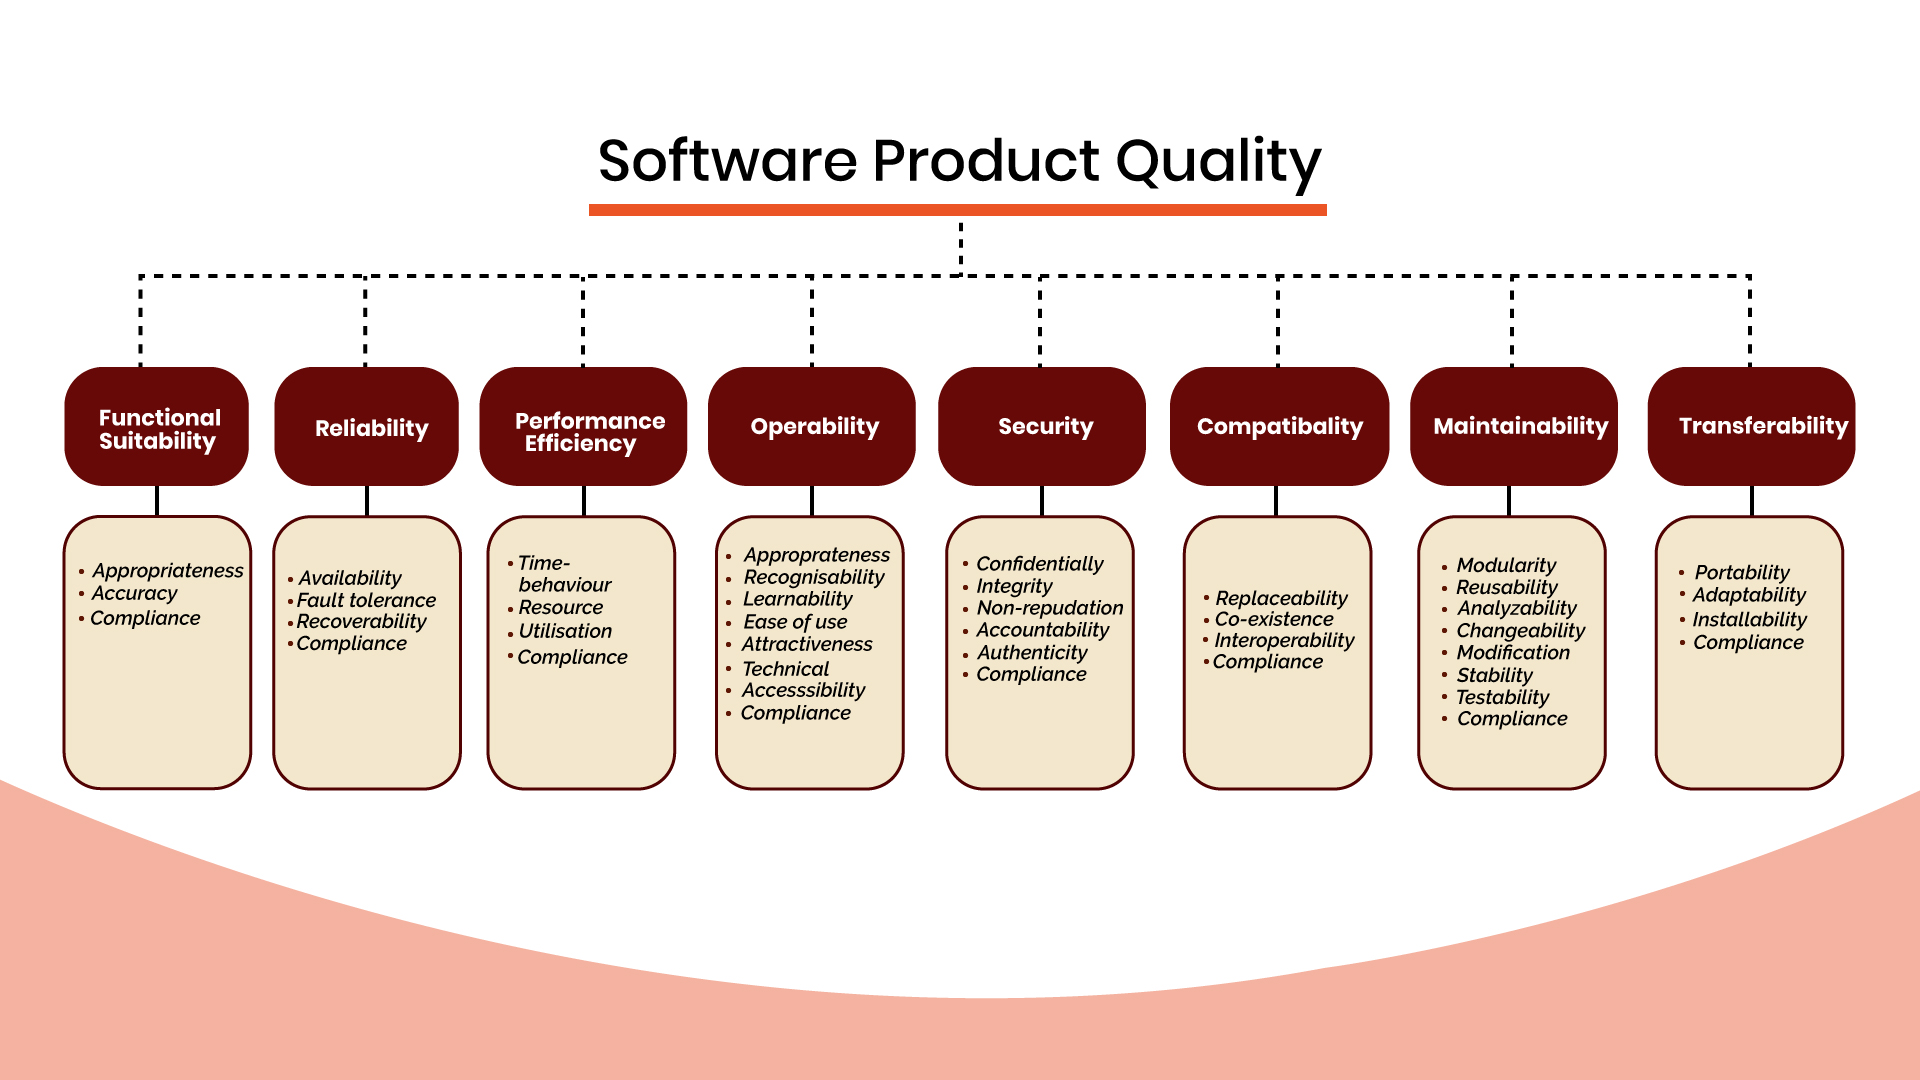 ISO/IEC 25010:2011 Software Quality Model